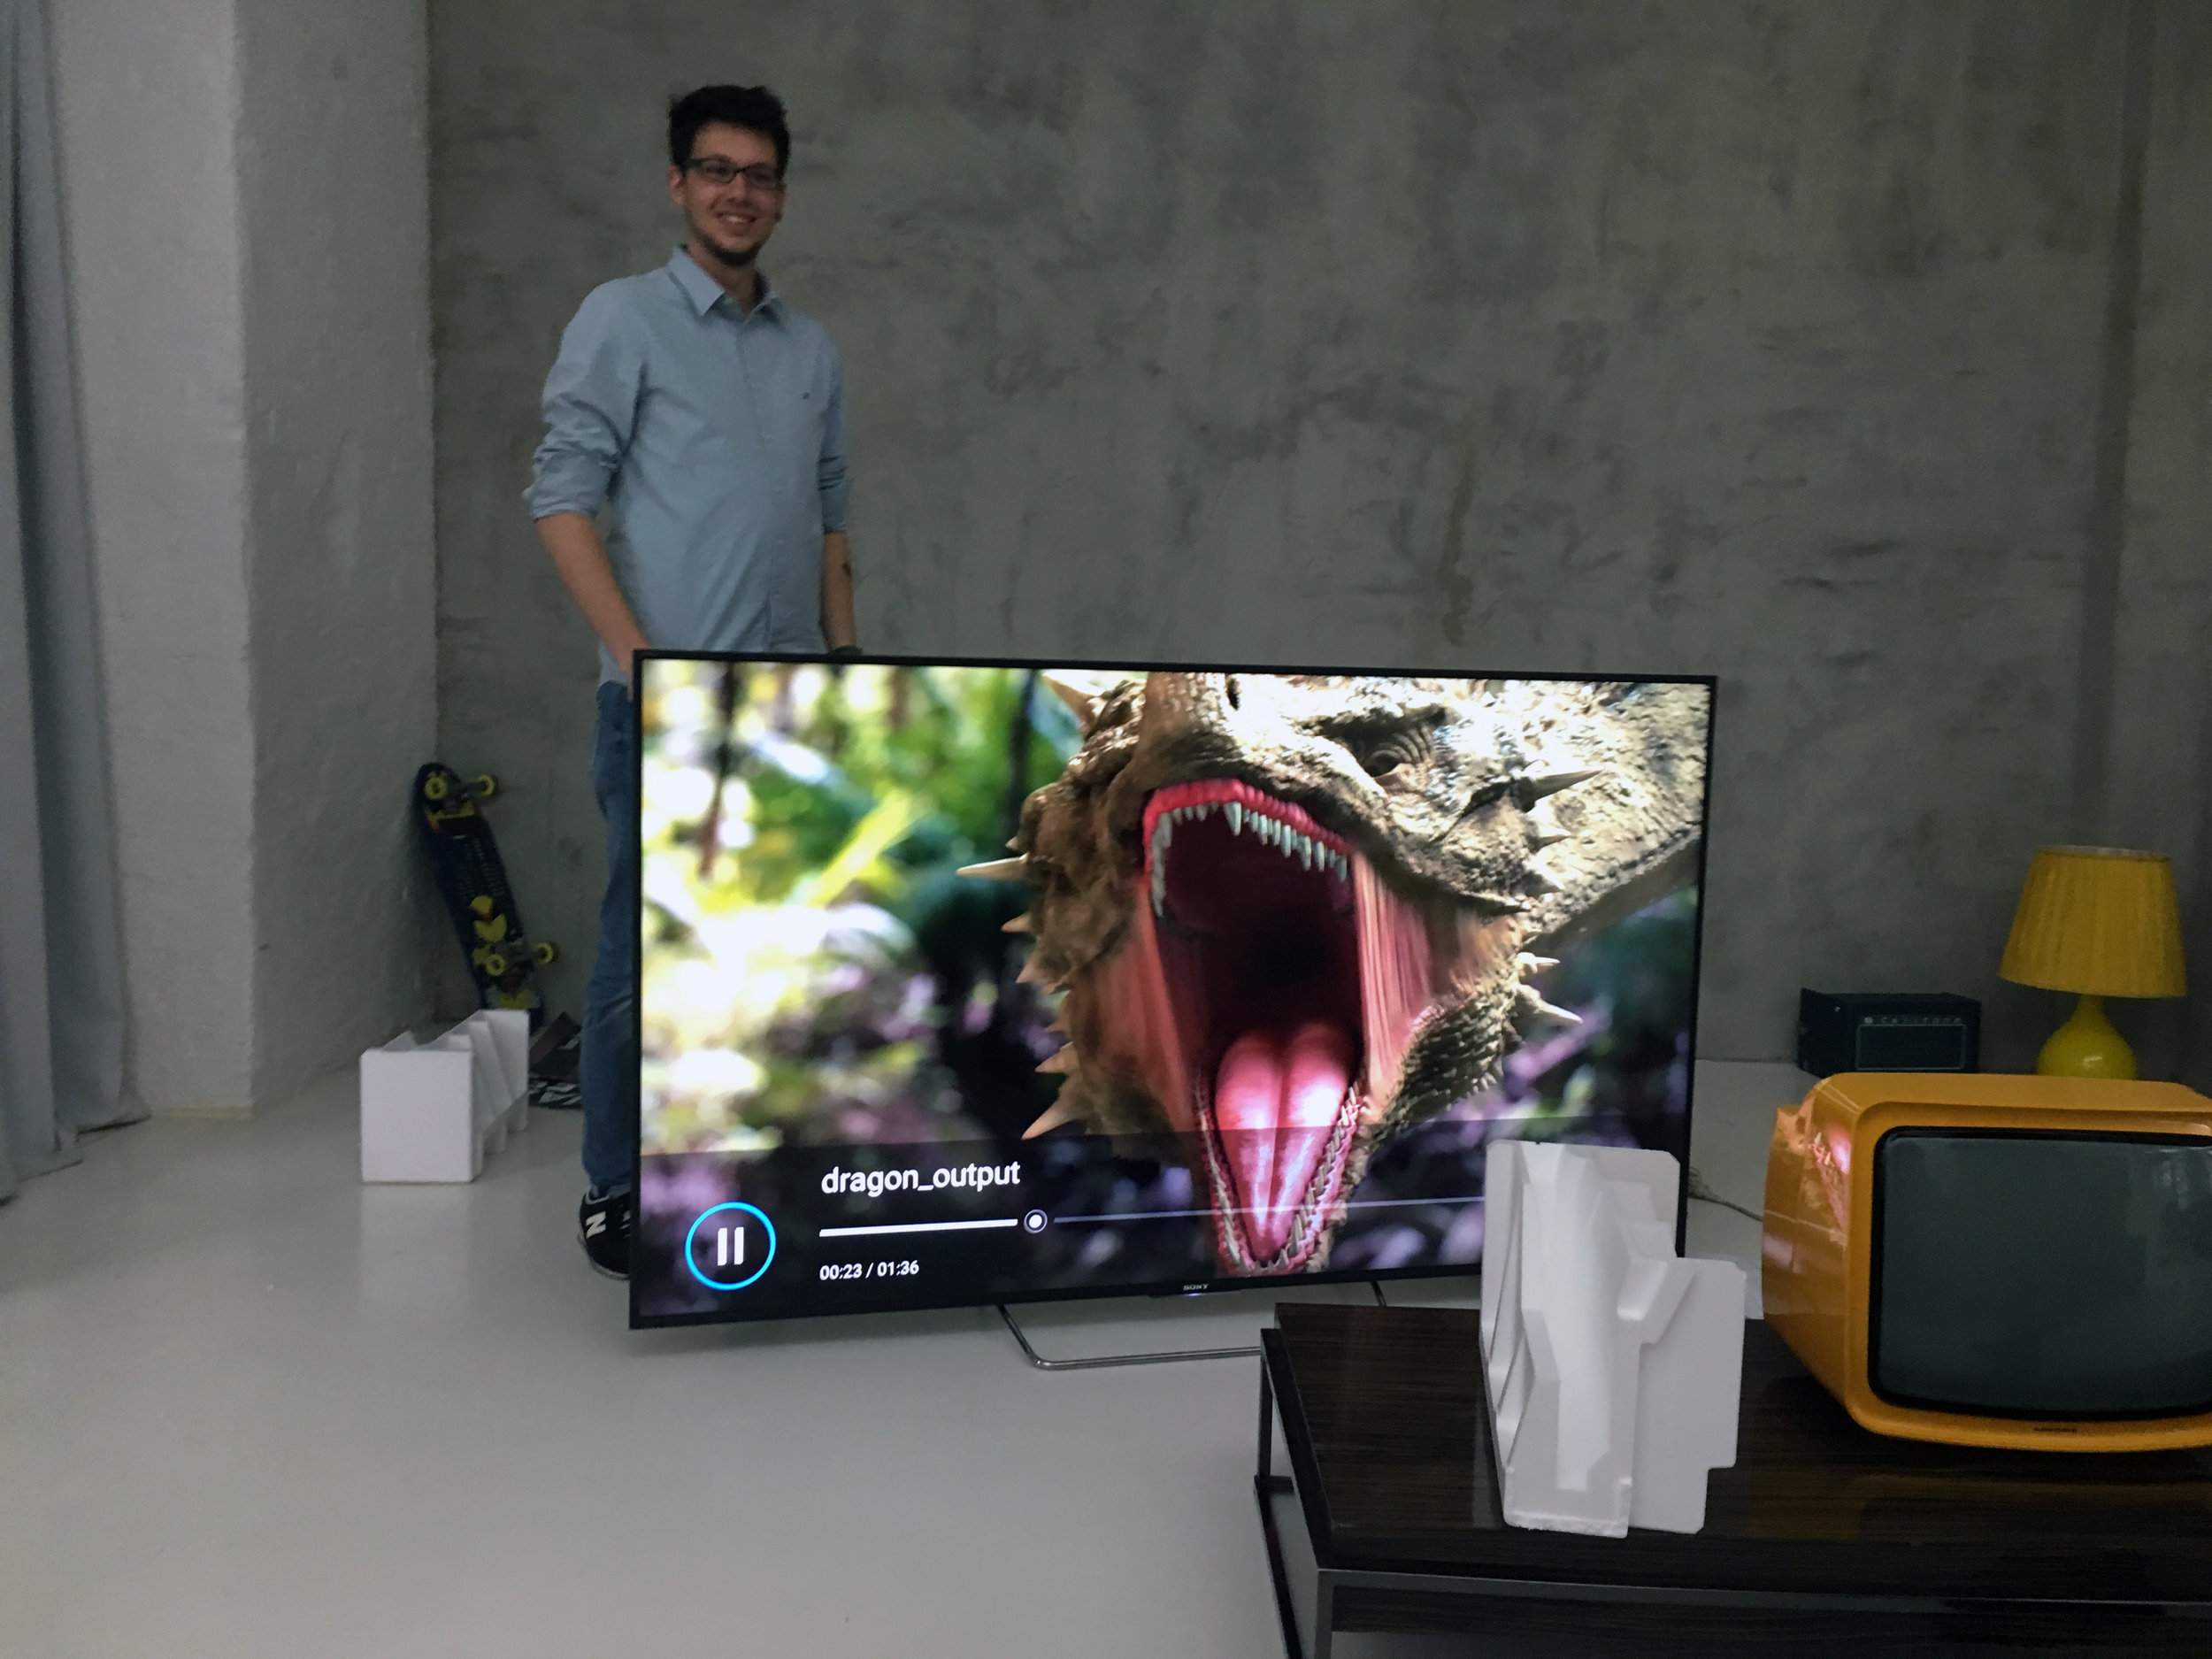 75 Inch Sony Bravia TV for our roaring CGI Dragon. Mega!